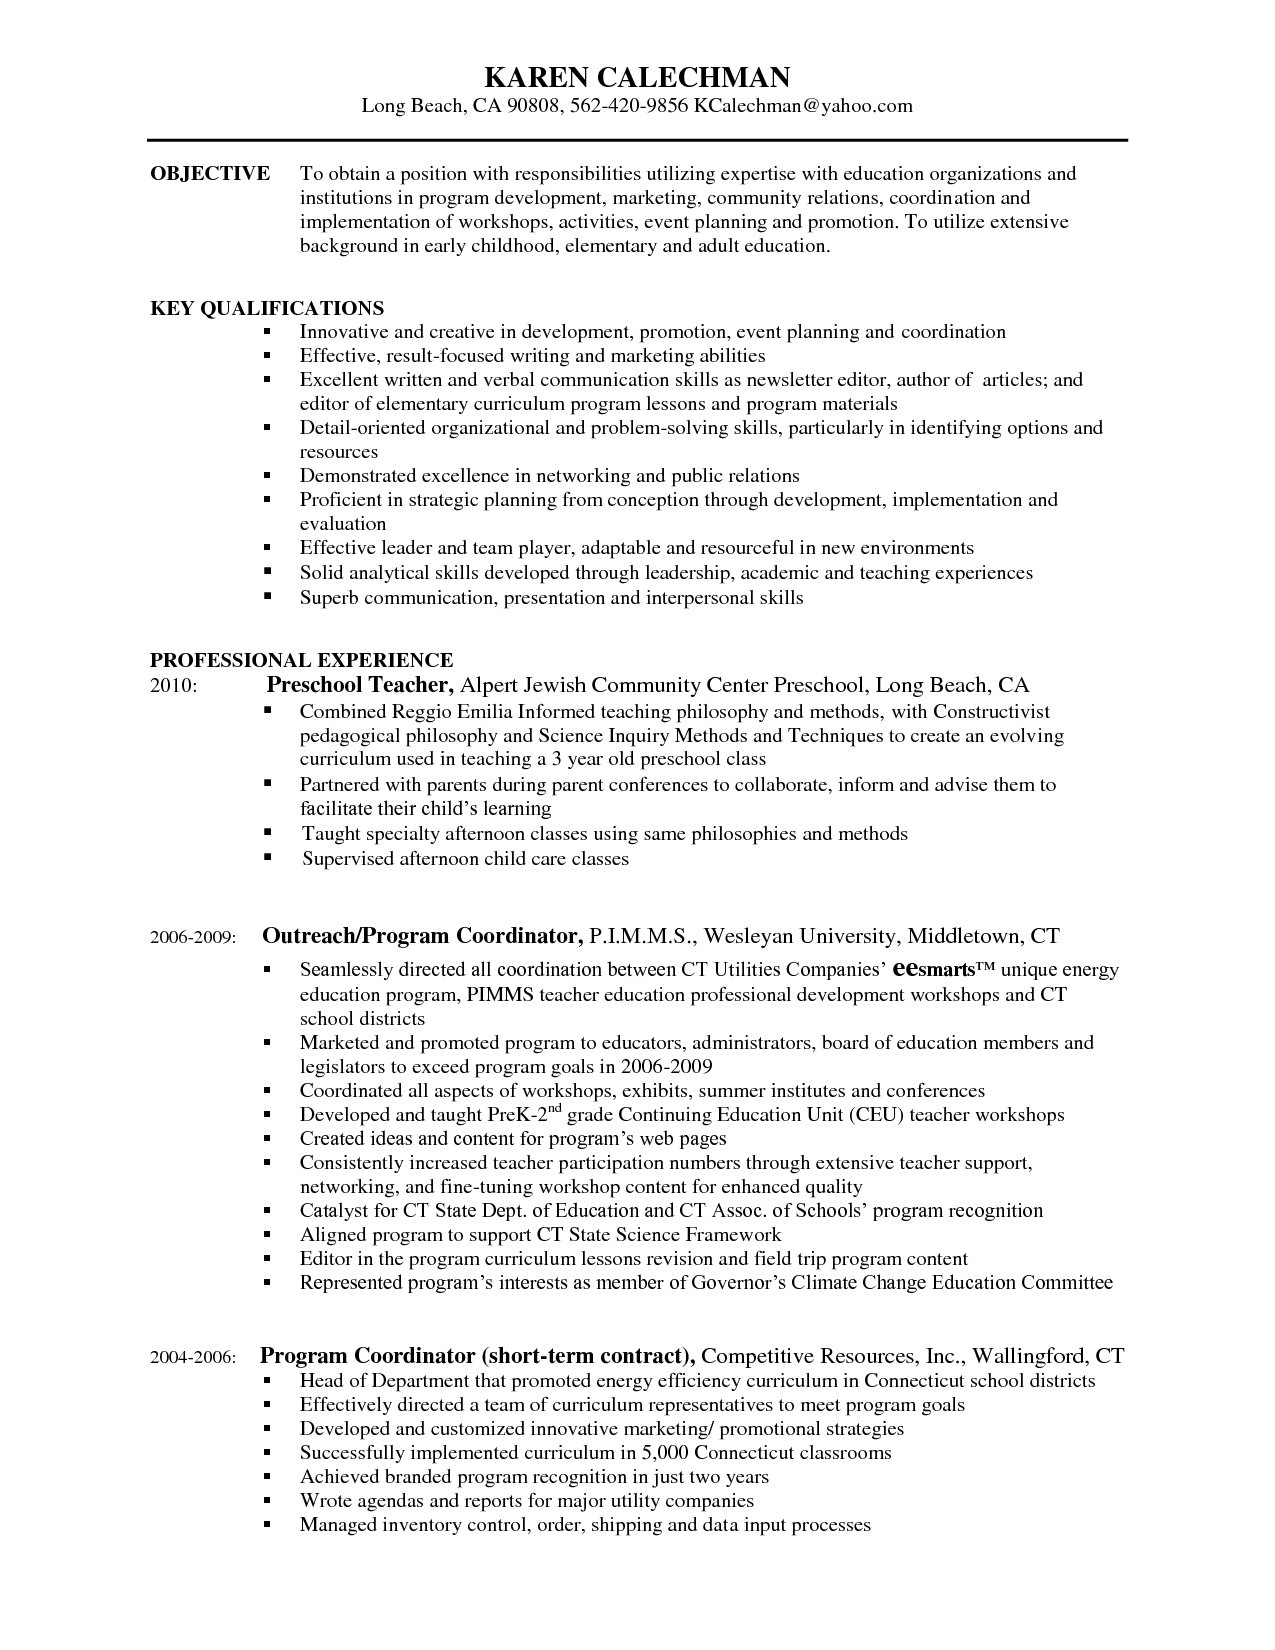 Samples Of Resume Objectives Educational Leader Resume Objective Sample Skills After School